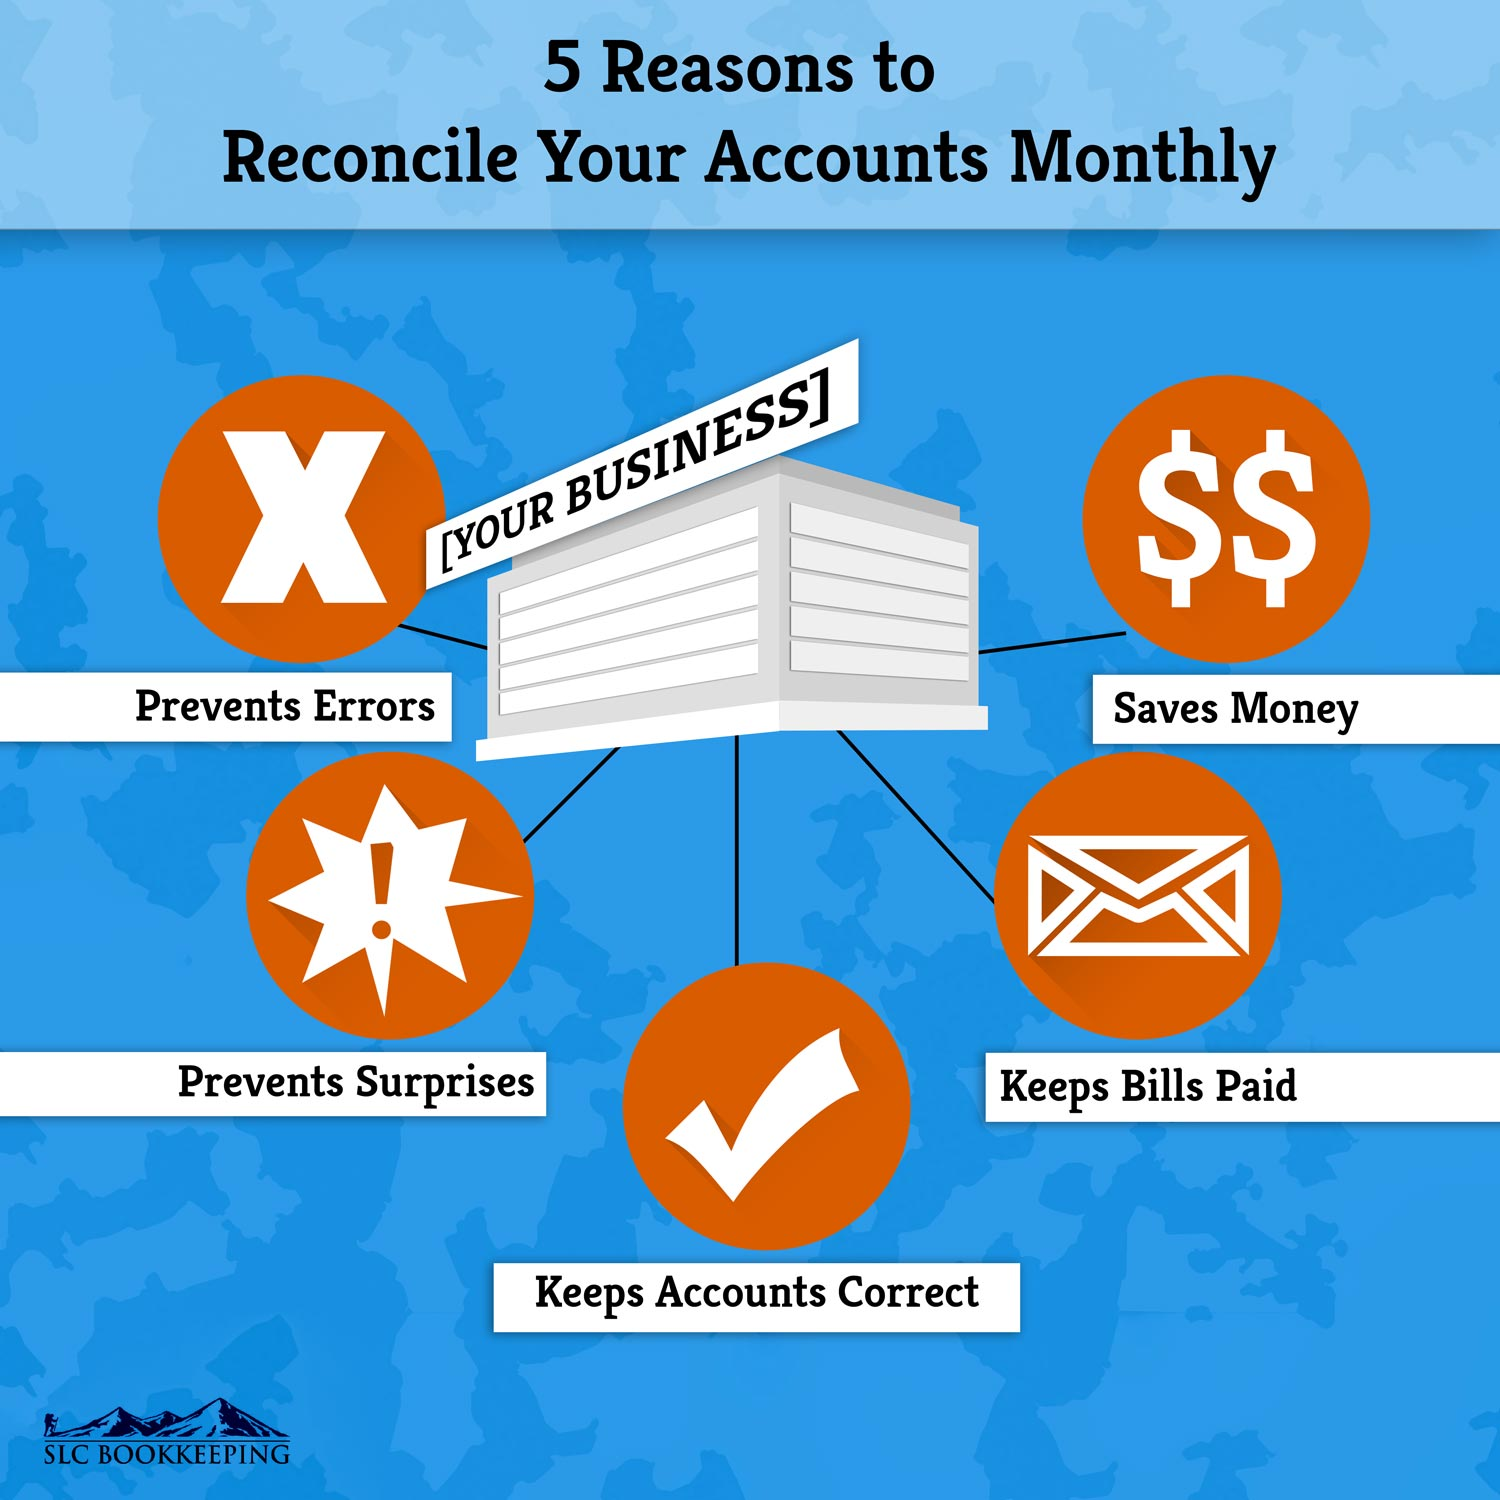 5-Reasons-to-Reconcile-Accounts-Monthly1.jpg